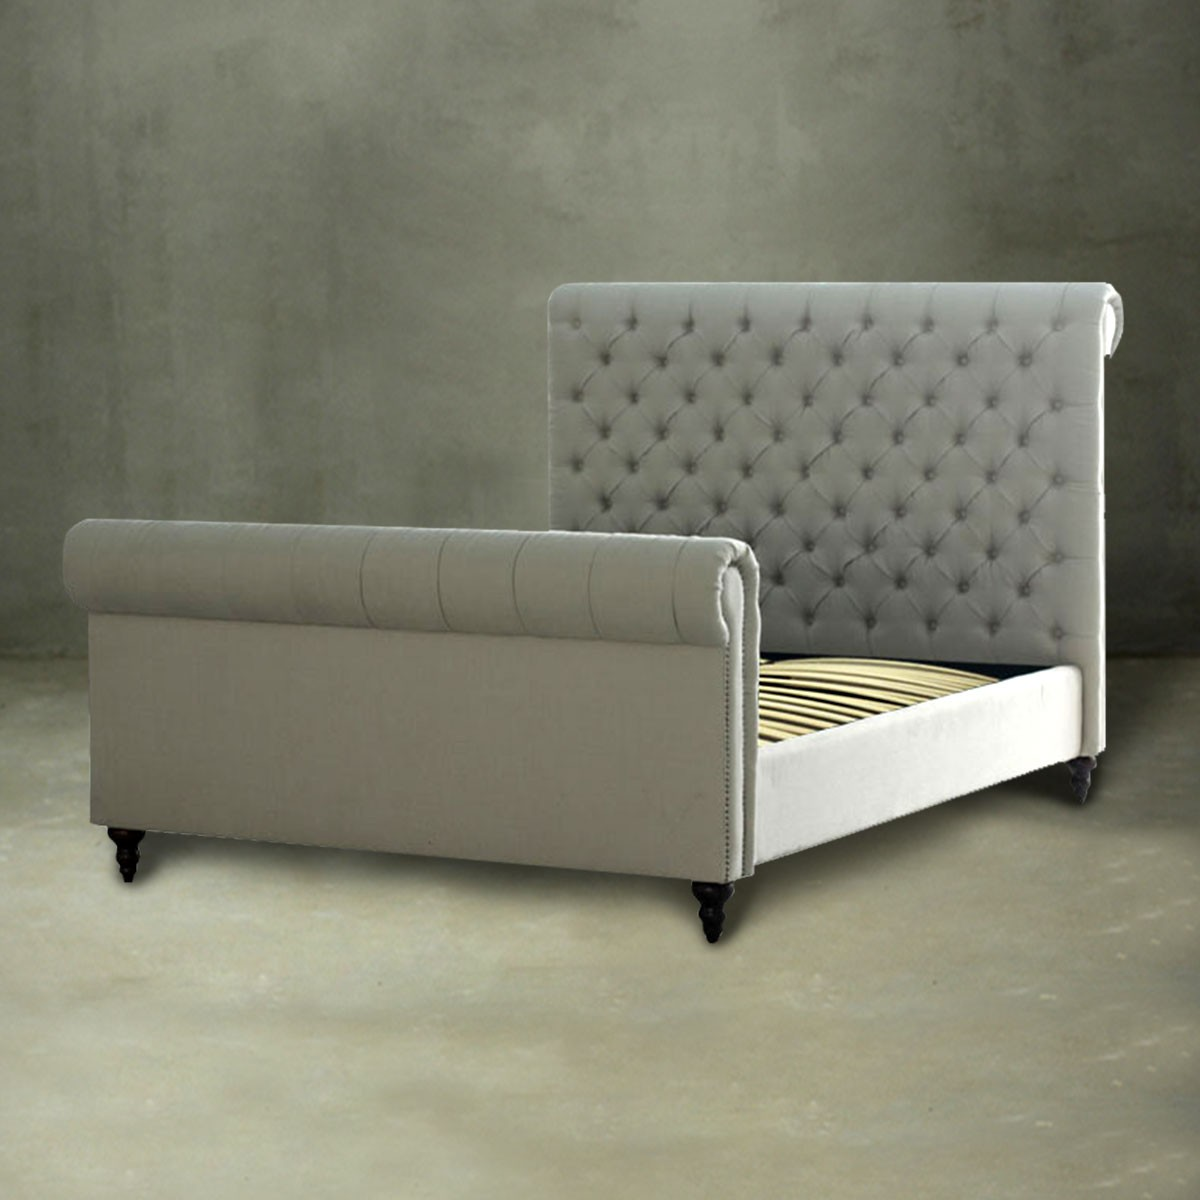 Queen Platform Bed with Tufted Upholstered Headboard (PJB09021)